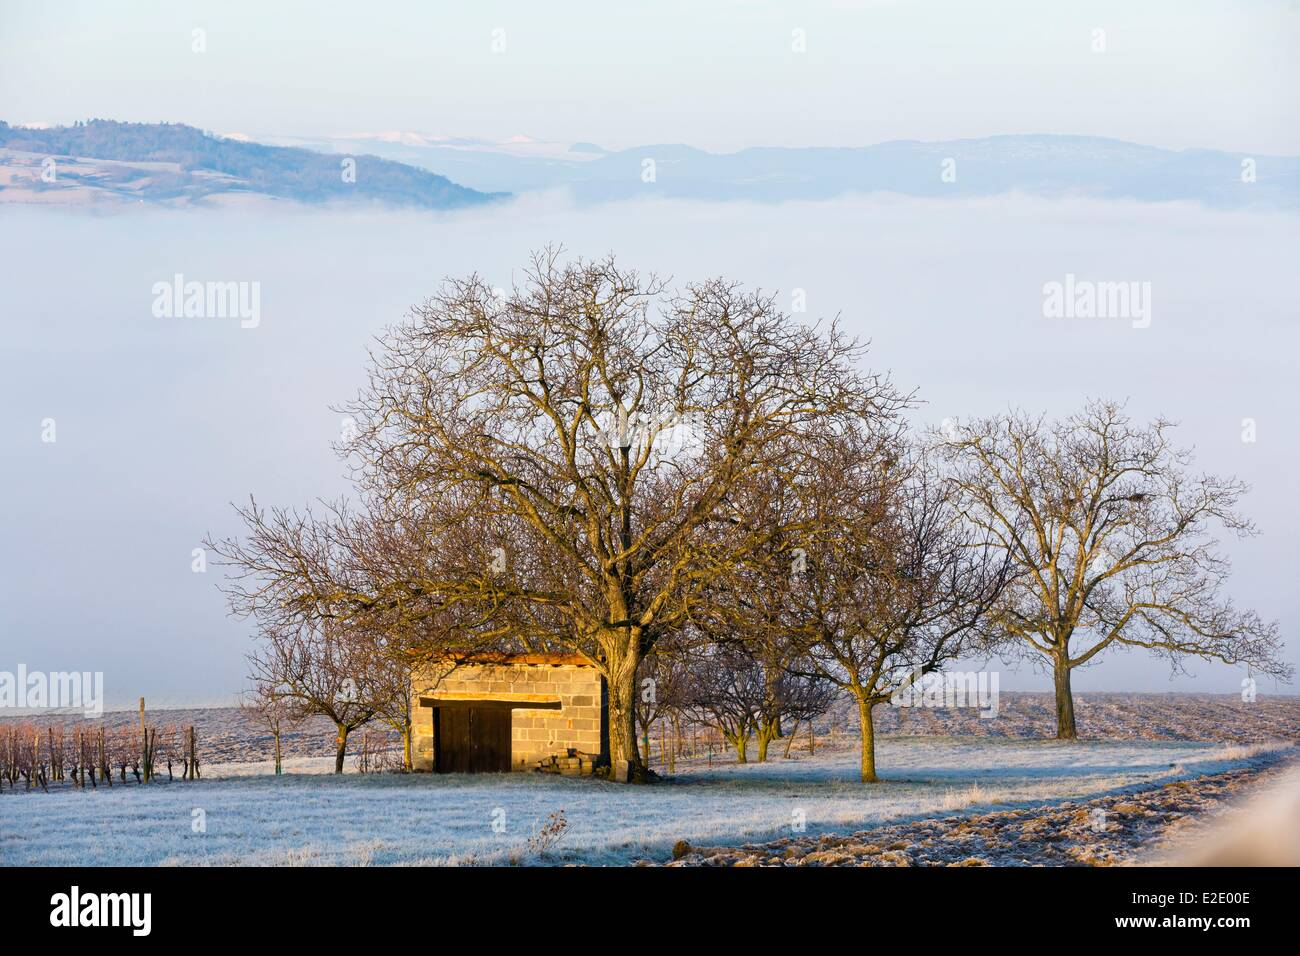 France Puy de Dome shed and trees in winter Sancy mountains in the background - Stock Image